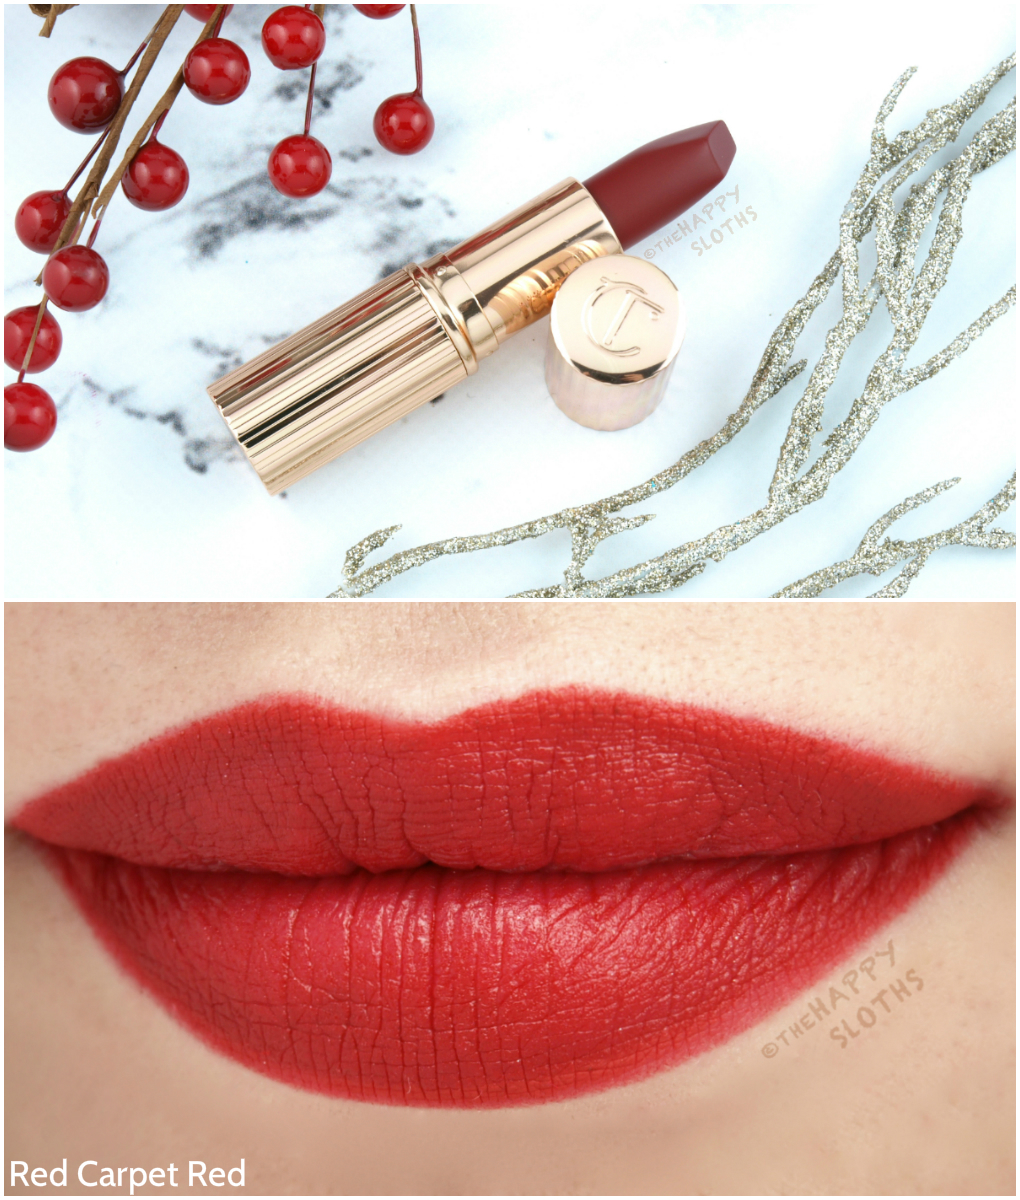 Charlotte Tilbury Matte Revolution Lipstick Red Carpet Red Swatches Review